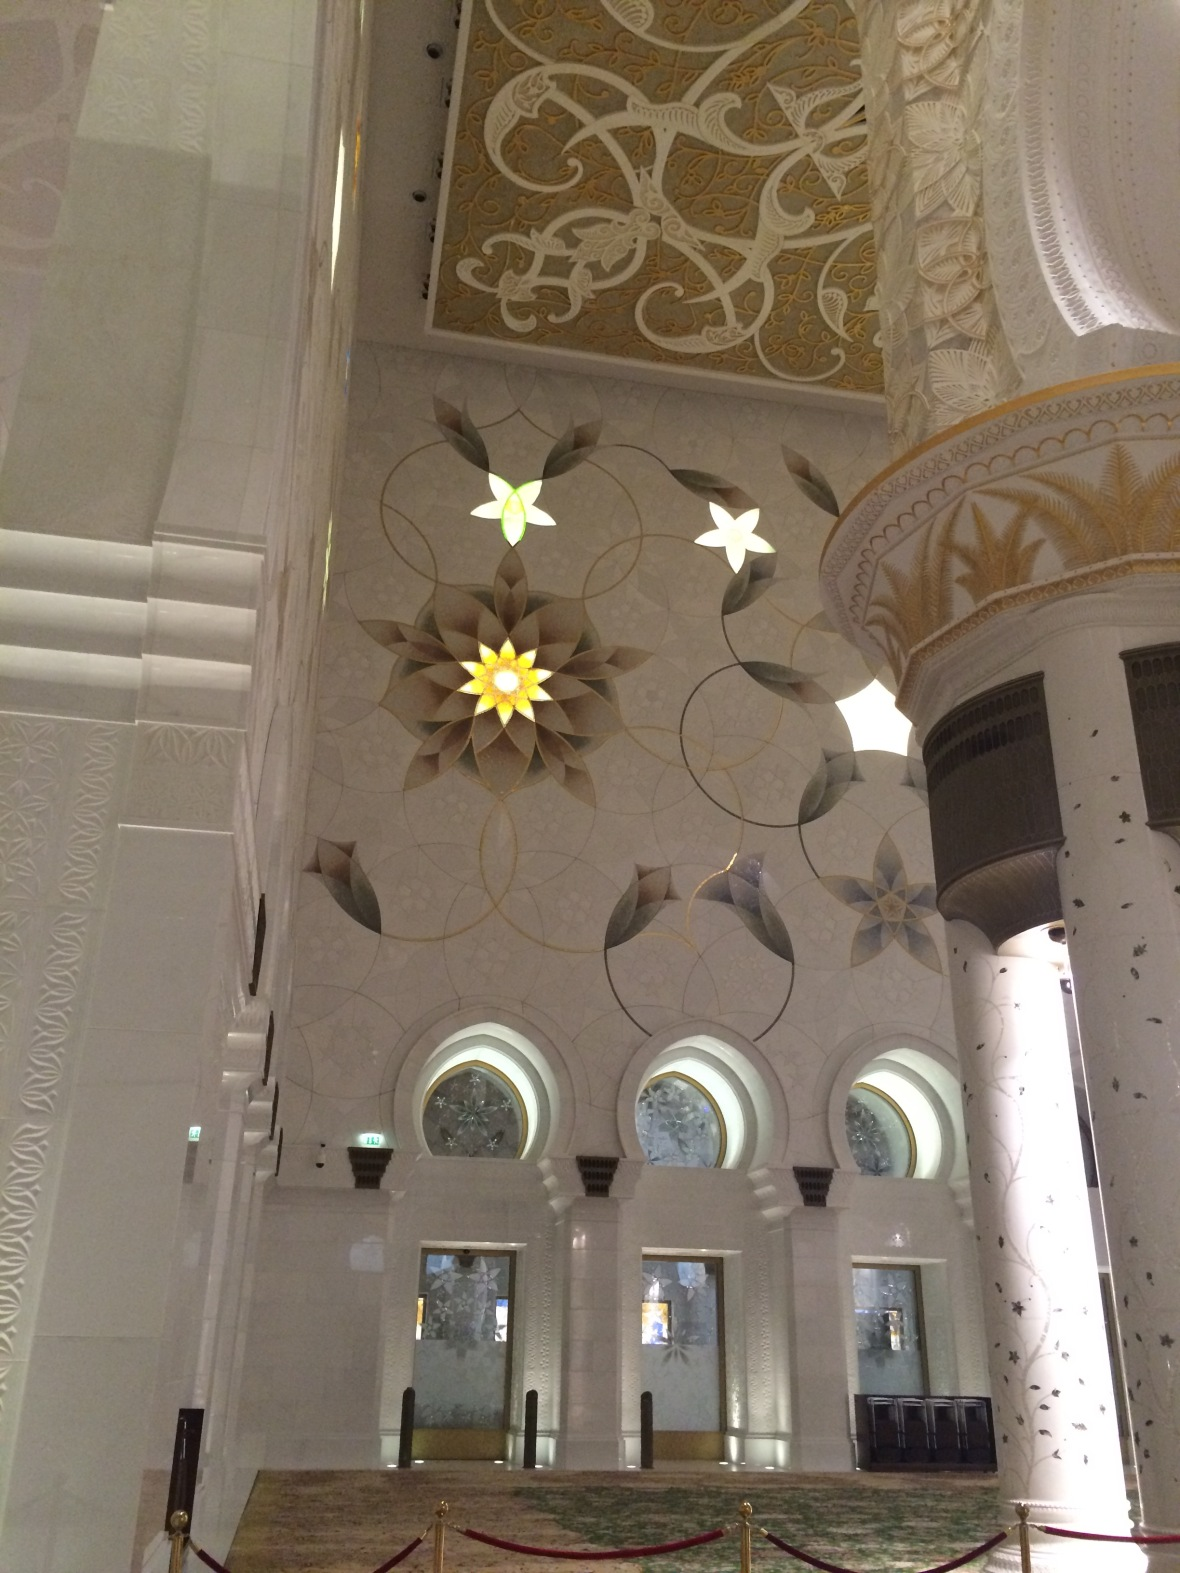 Interior, Sheikh Zayed Grand Mosque, Abu Dhabi, UAE